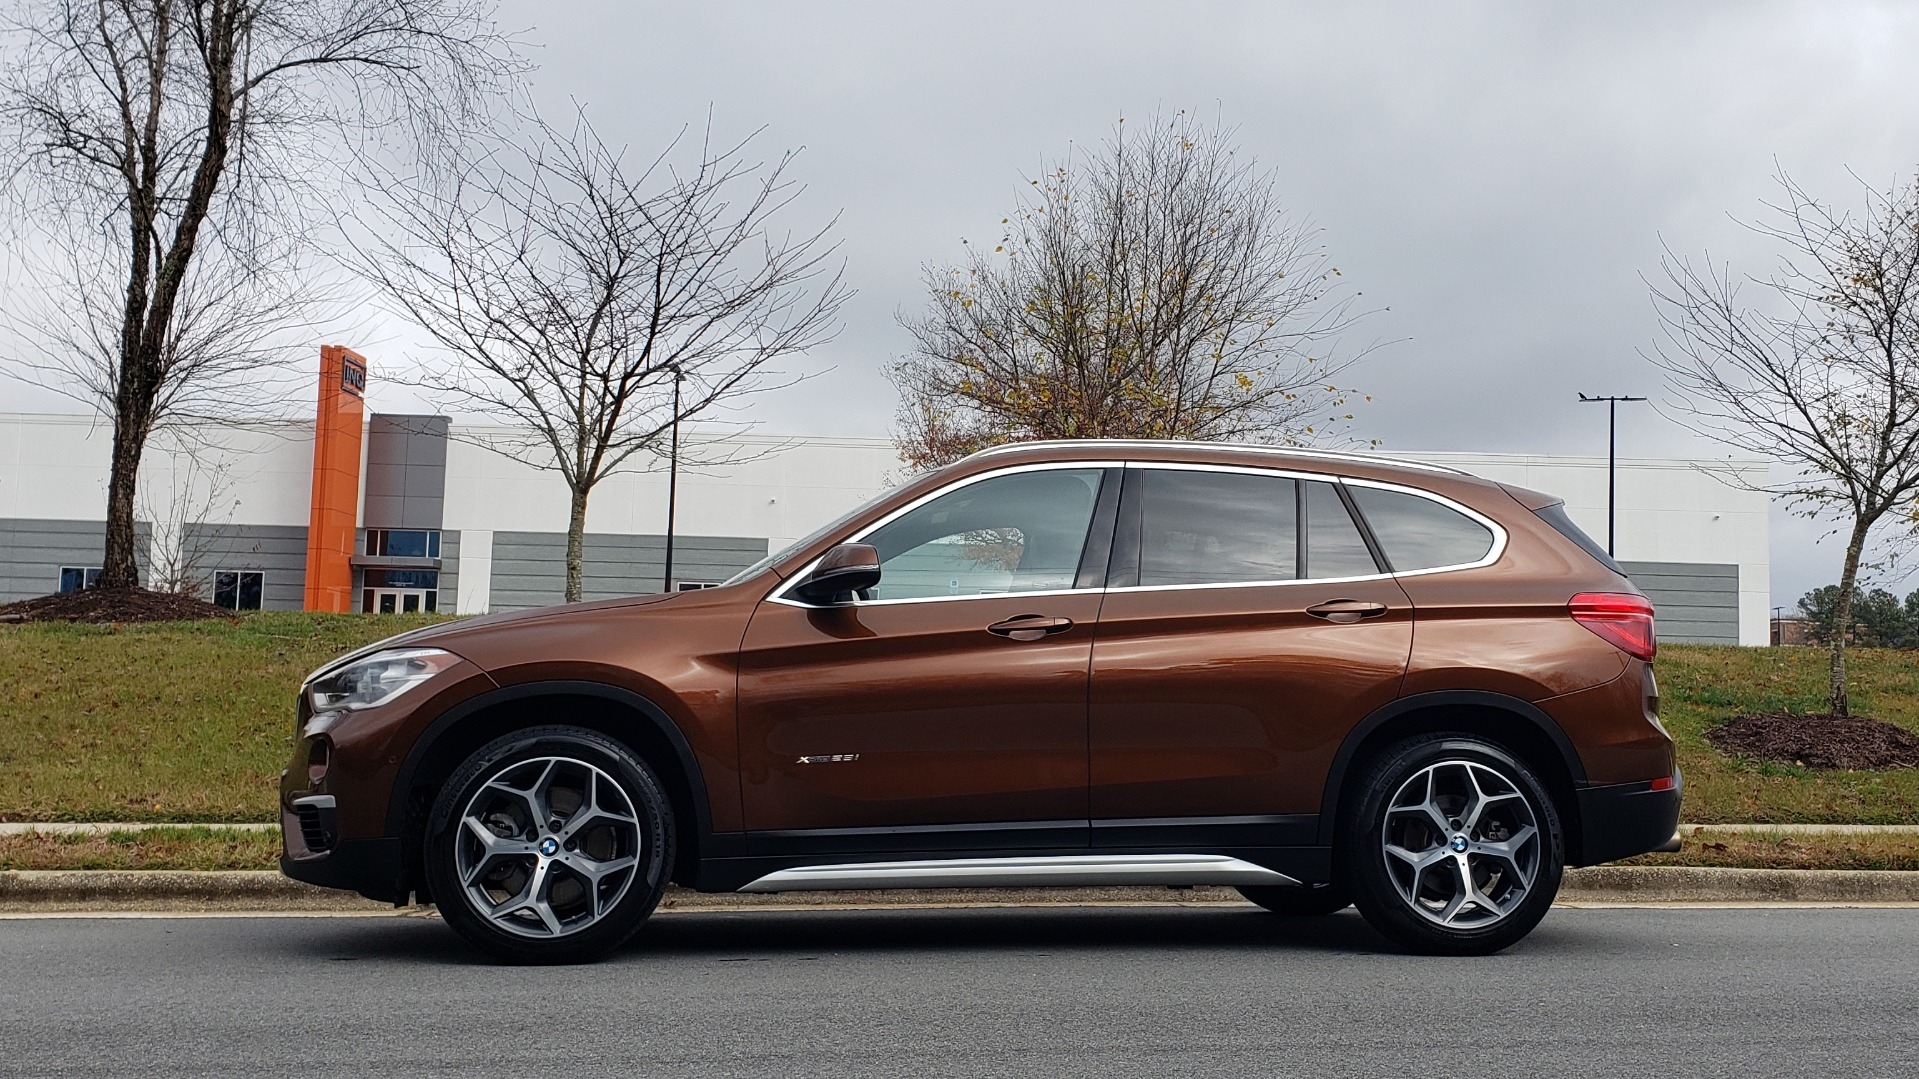 Used 2017 BMW X1 XDRIVE28I / PREM / TECH / DRVR ASST / COLD WTHR / REARVIEW for sale Sold at Formula Imports in Charlotte NC 28227 2